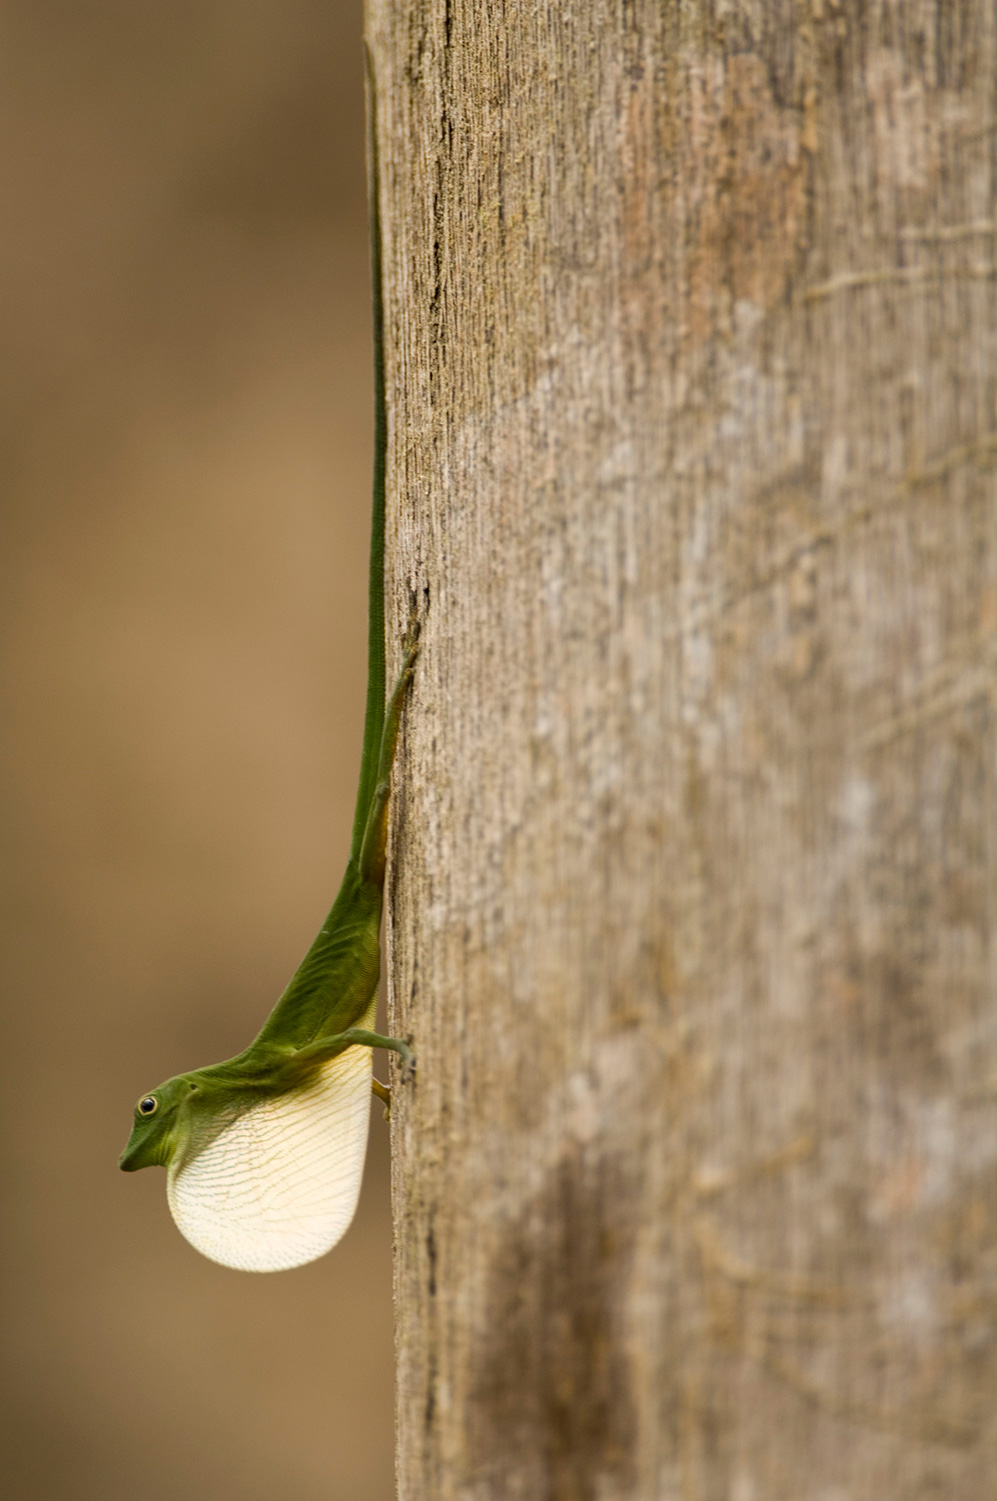 A small green lizard extends its large white throat